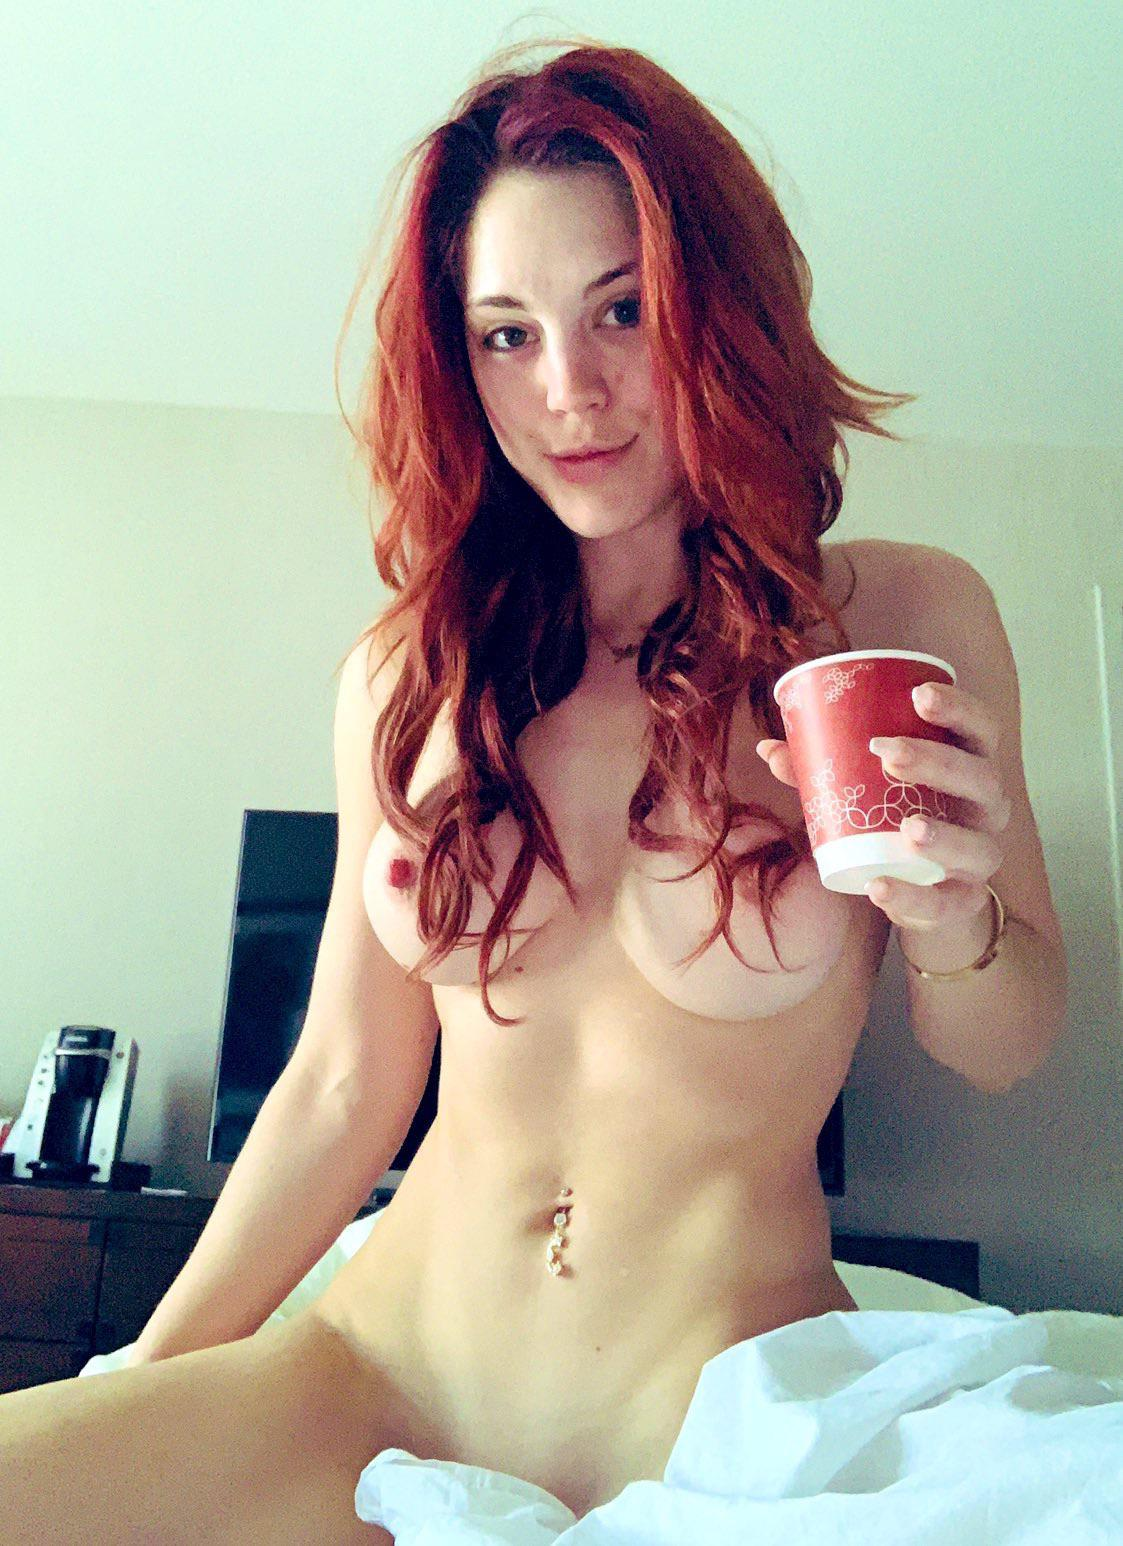 Molly And Her Morning Cup